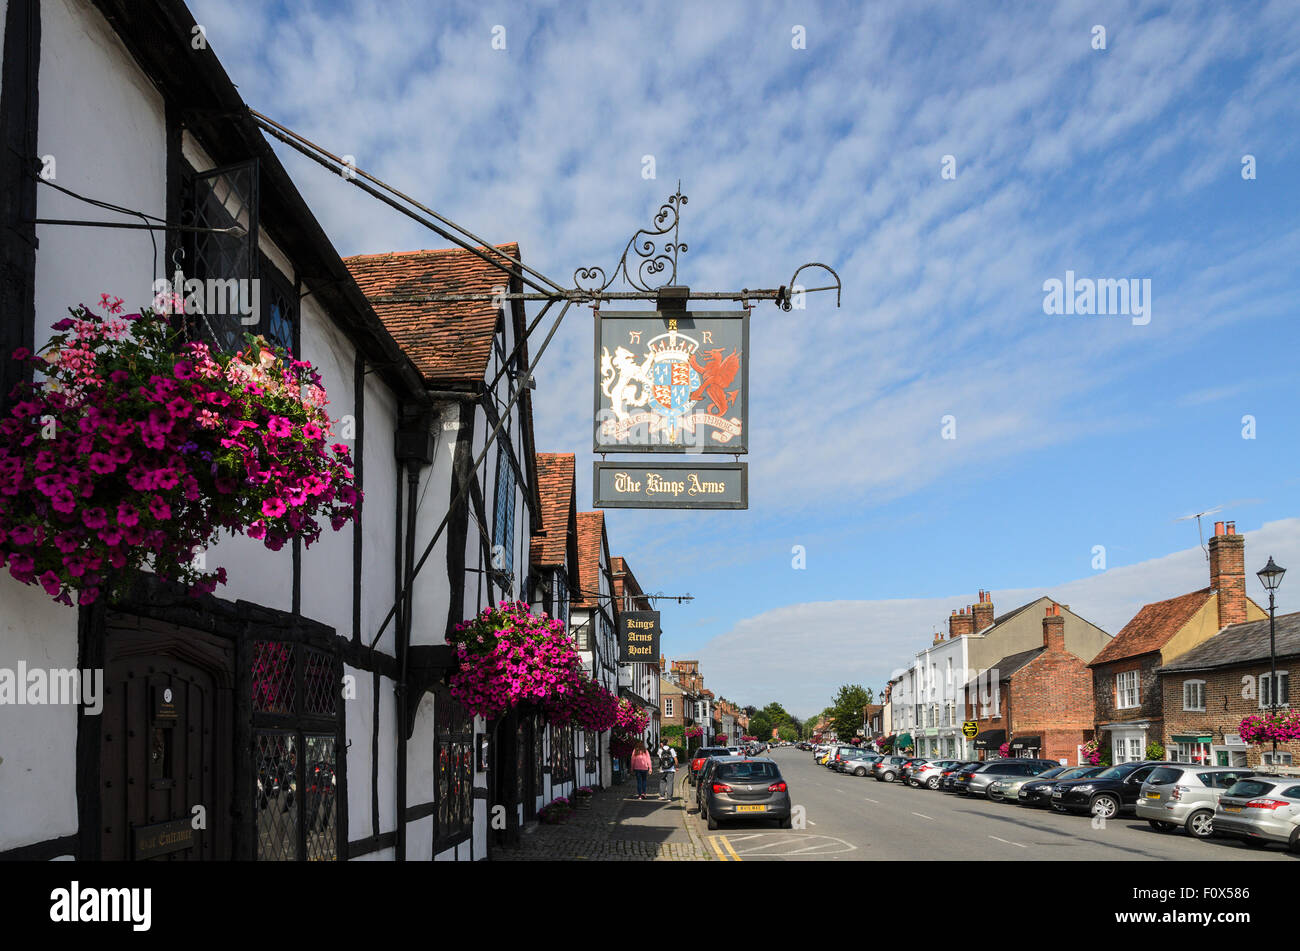 The Kings Arms featured in Four Weddings and a Funeral. Situated in Old Amersham, Buckinghamshire, England, UK. - Stock Image